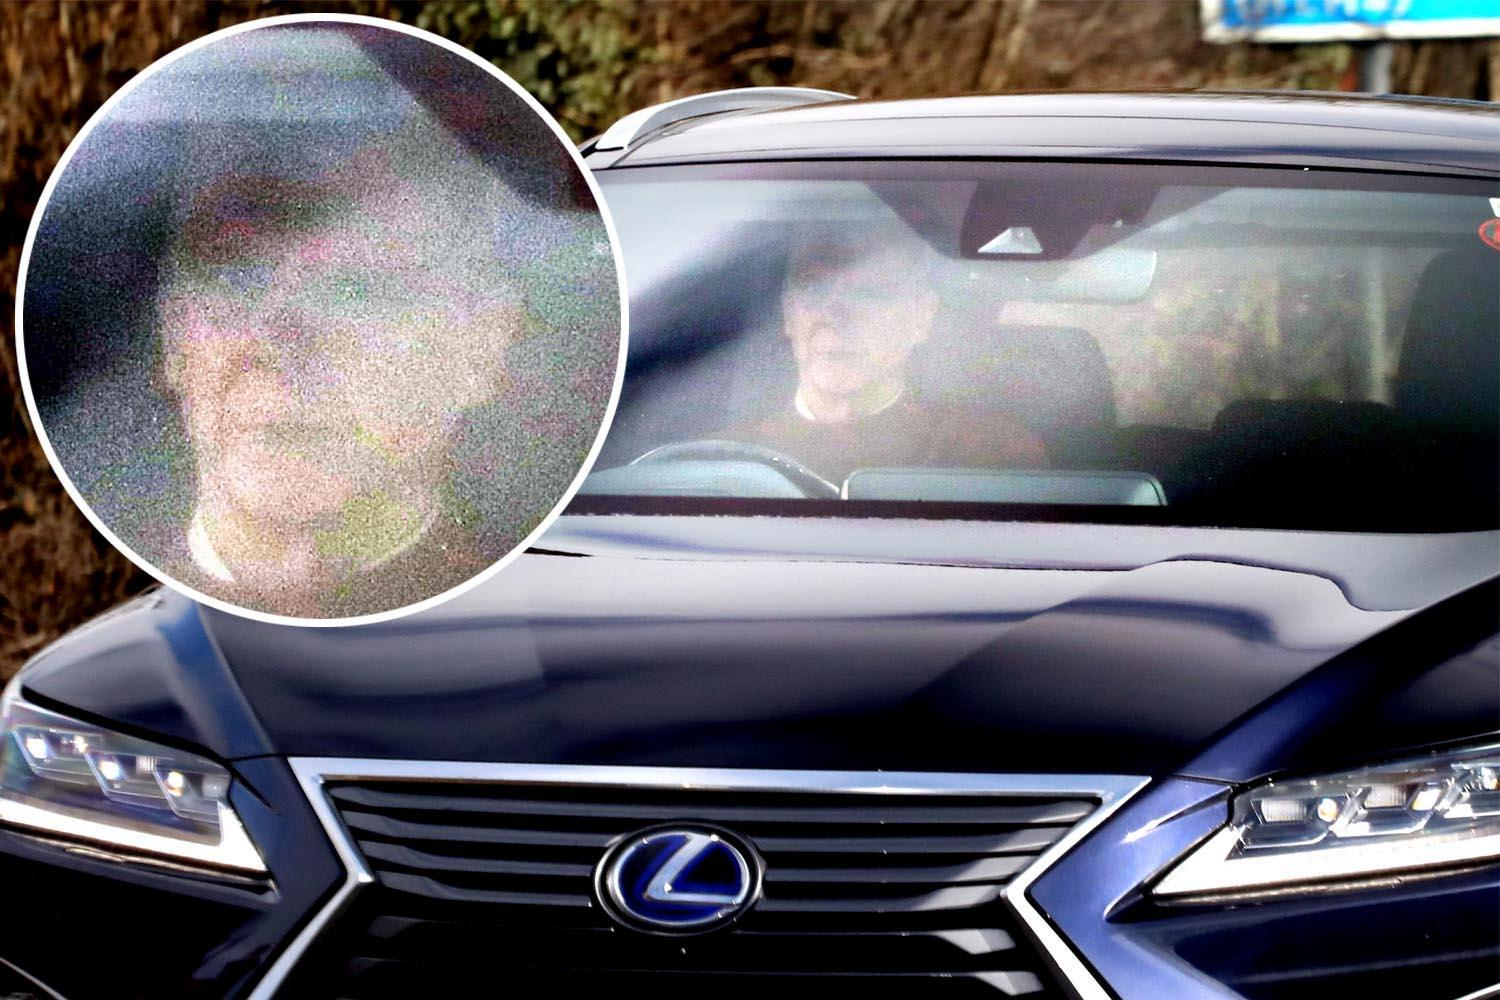 Arsene Wenger arrives at Arsenal training looking glum as he nears exit following Brighton defeat